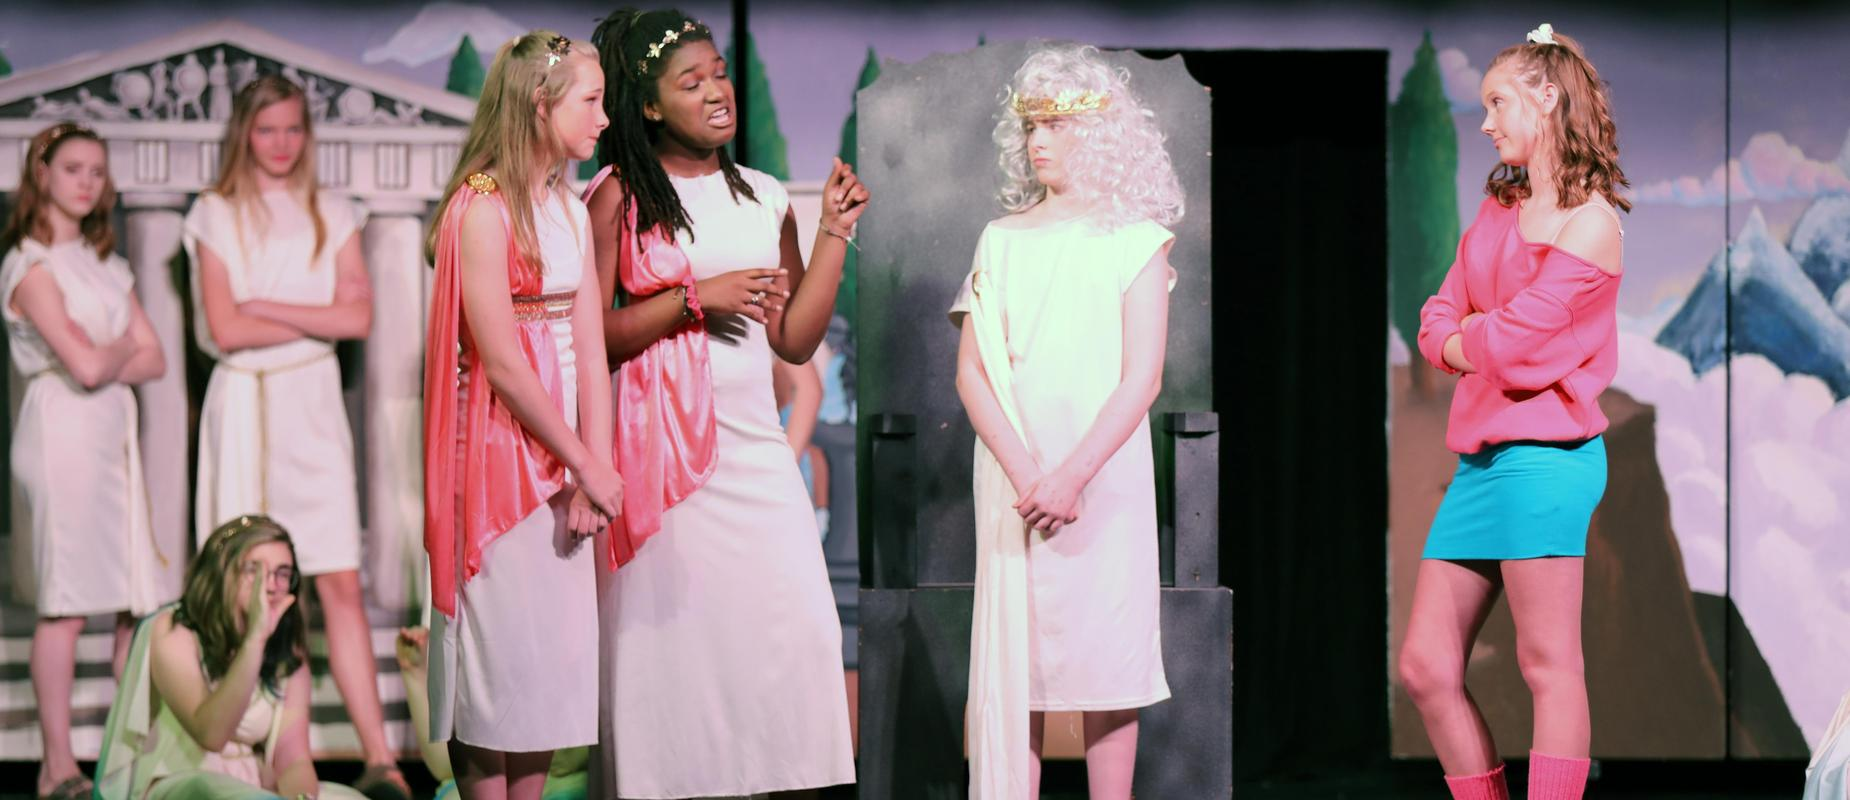 Xanadu actresses in goddess outfits talk to Greek god on stage